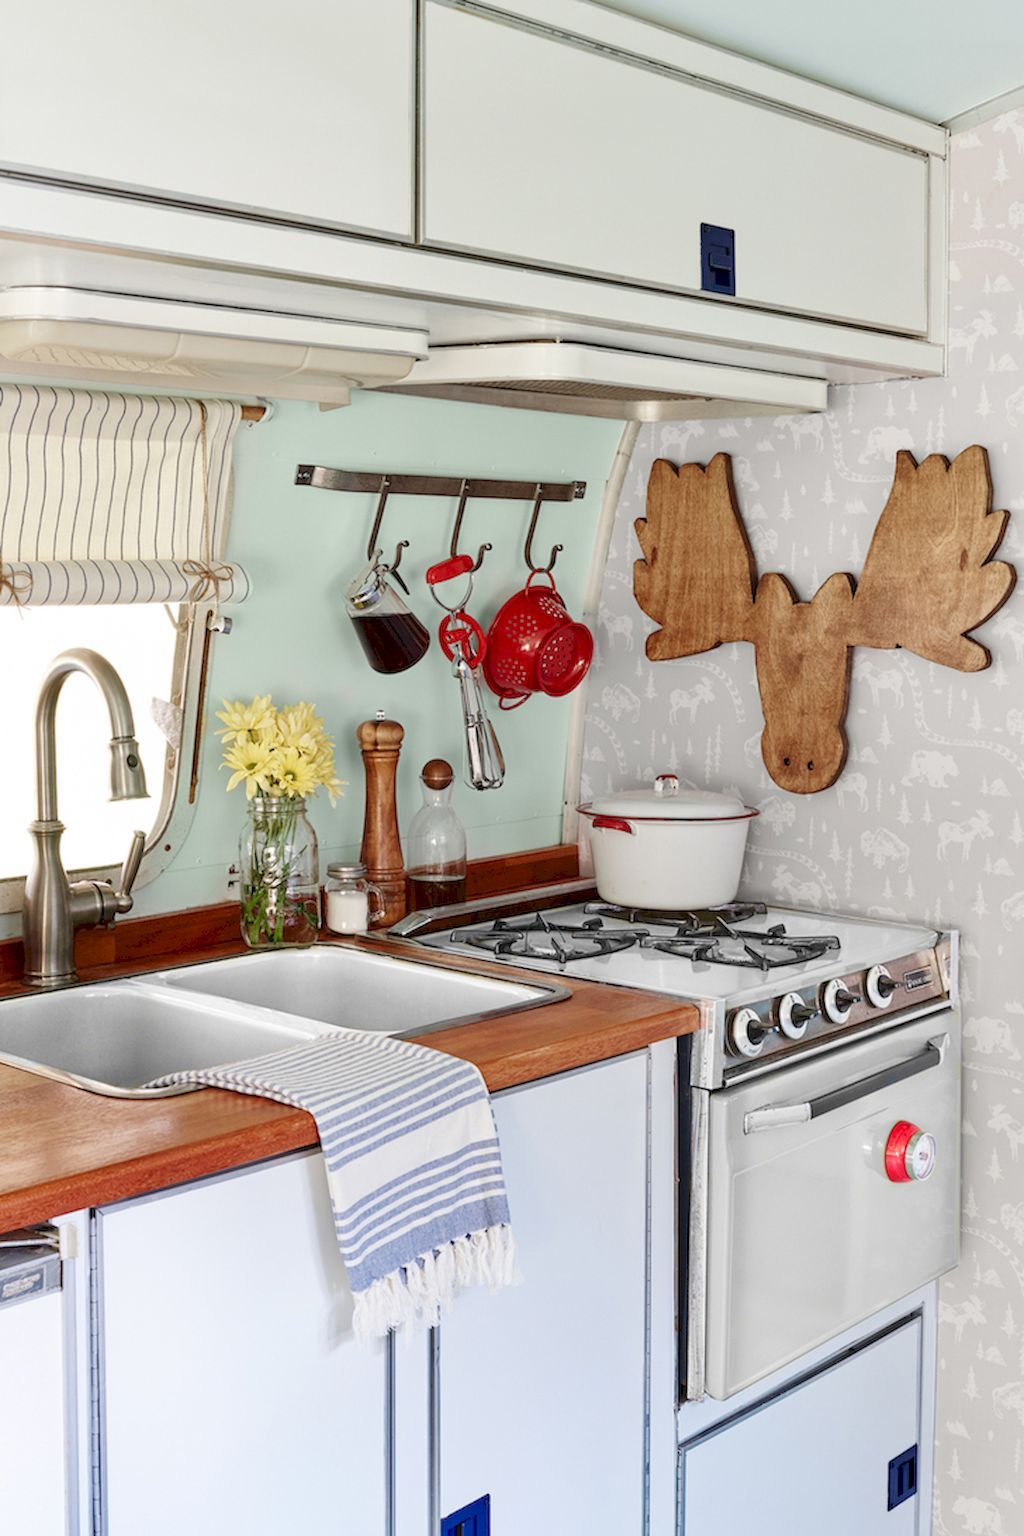 85 Travel Trailers Interior Ideas For Full Time RV Living